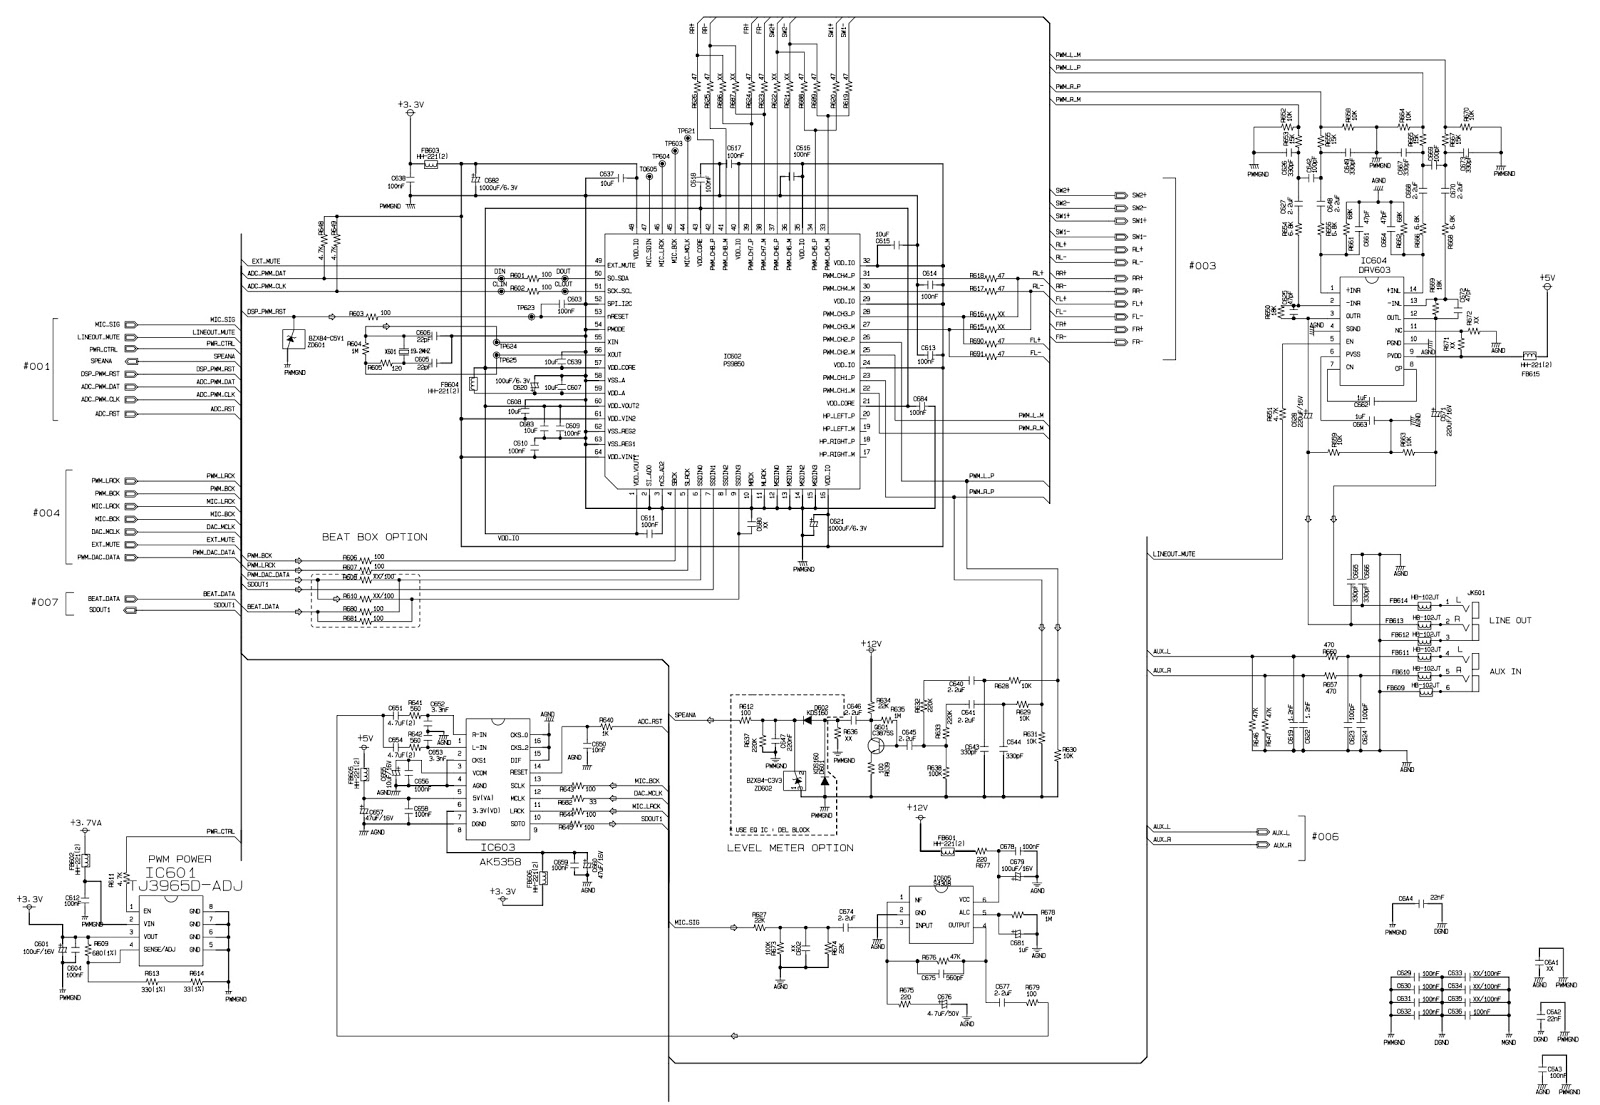 lg cm6520 mini hi-fi system  u2013 schematic  u2013 power supply  rf servo  dsp